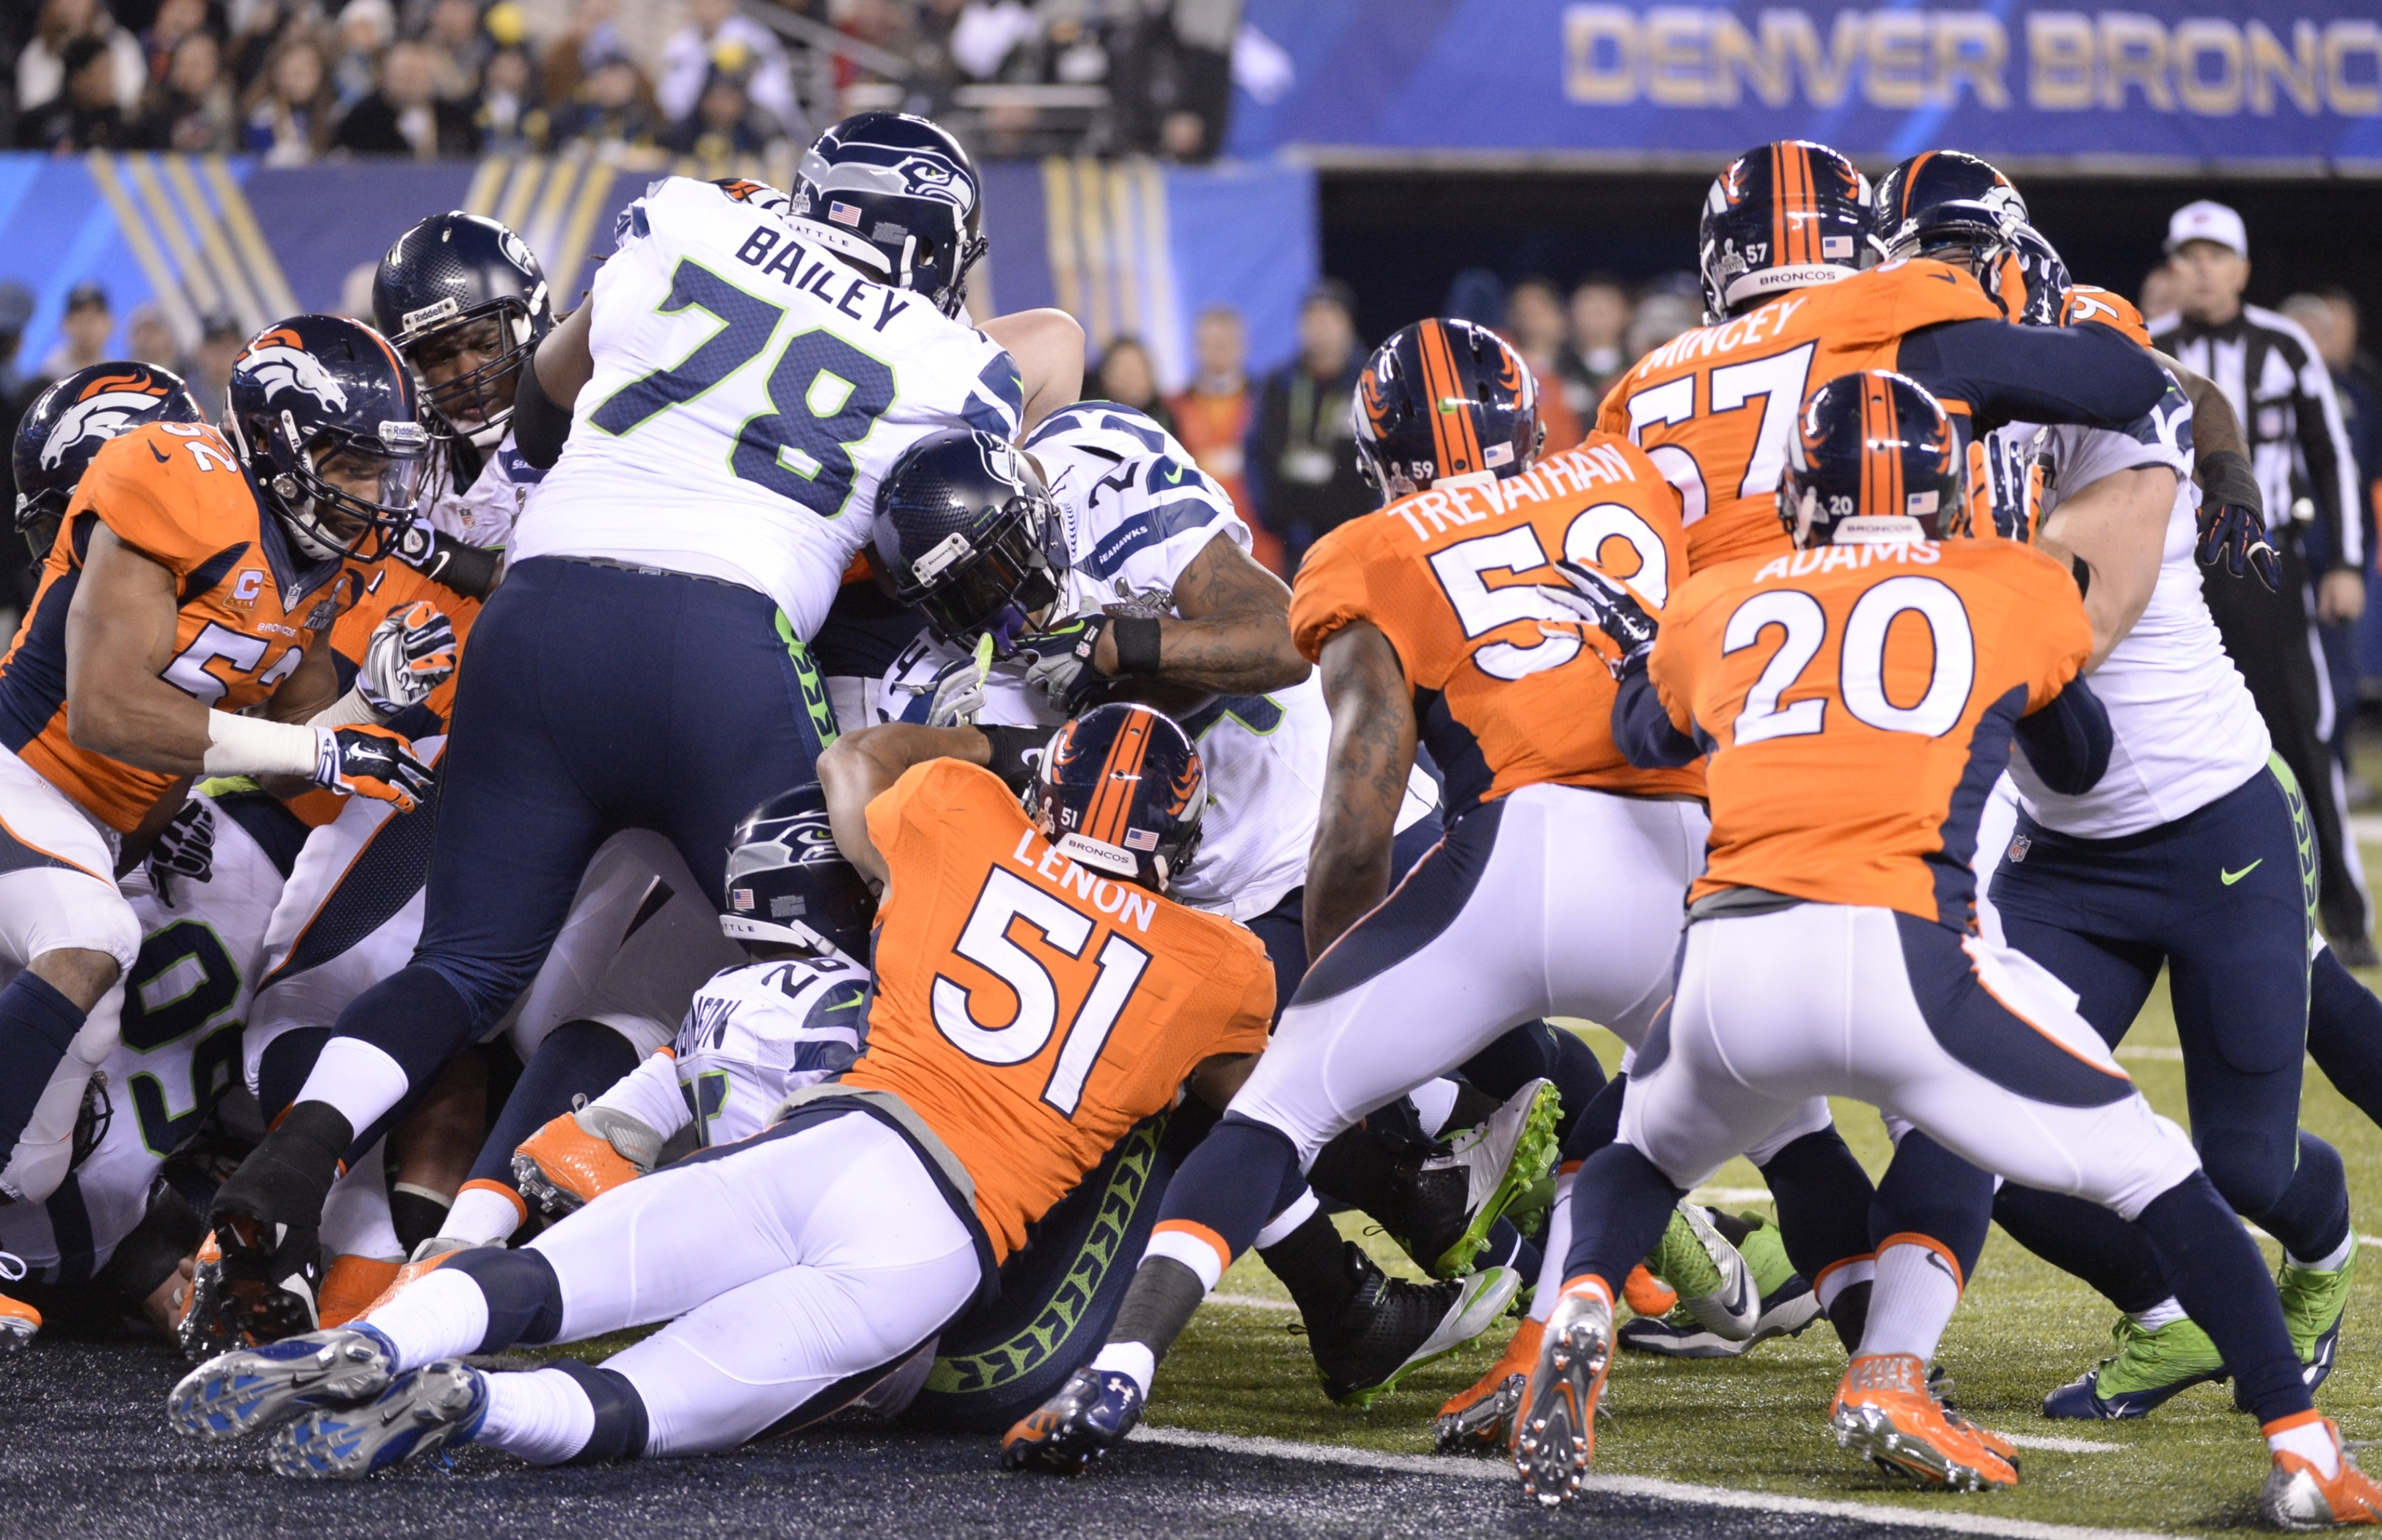 Marshawn Lynch (#24) of the Seattle Seahawks scores a 1-yard touchdown against the Denver Broncos during Super Bowl 48 at MetLife Stadium in East Rutherford, New Jersey, on February 2, 2014. (Timothy A. Clary/AFP/Getty Images)